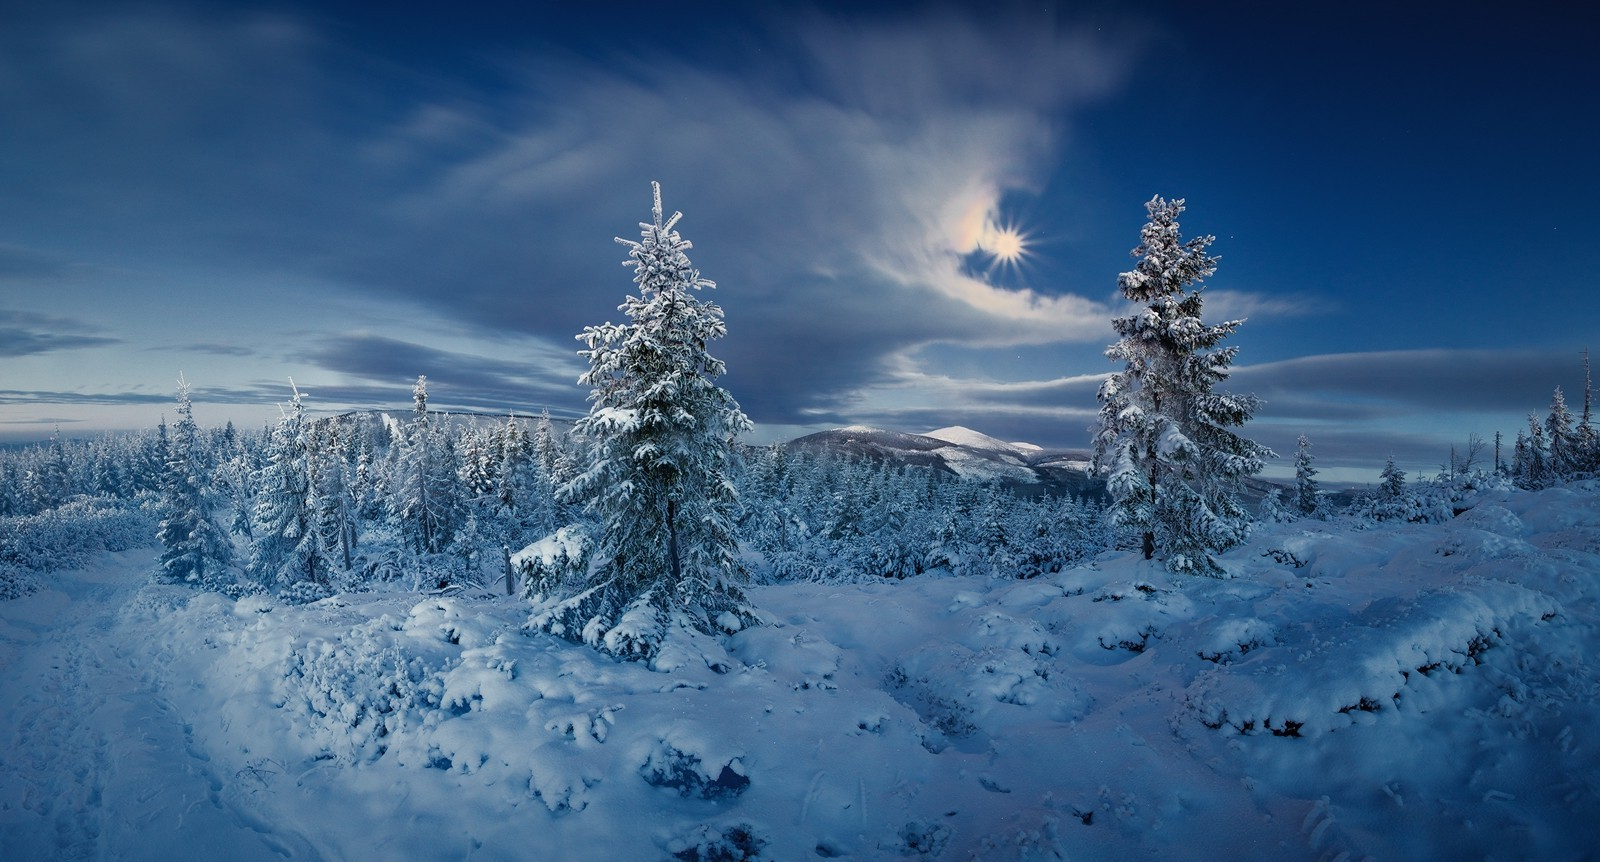 Animal Wallpaper Full Hd Landscape Nature Forest Winter Snow Cold Sun Clouds